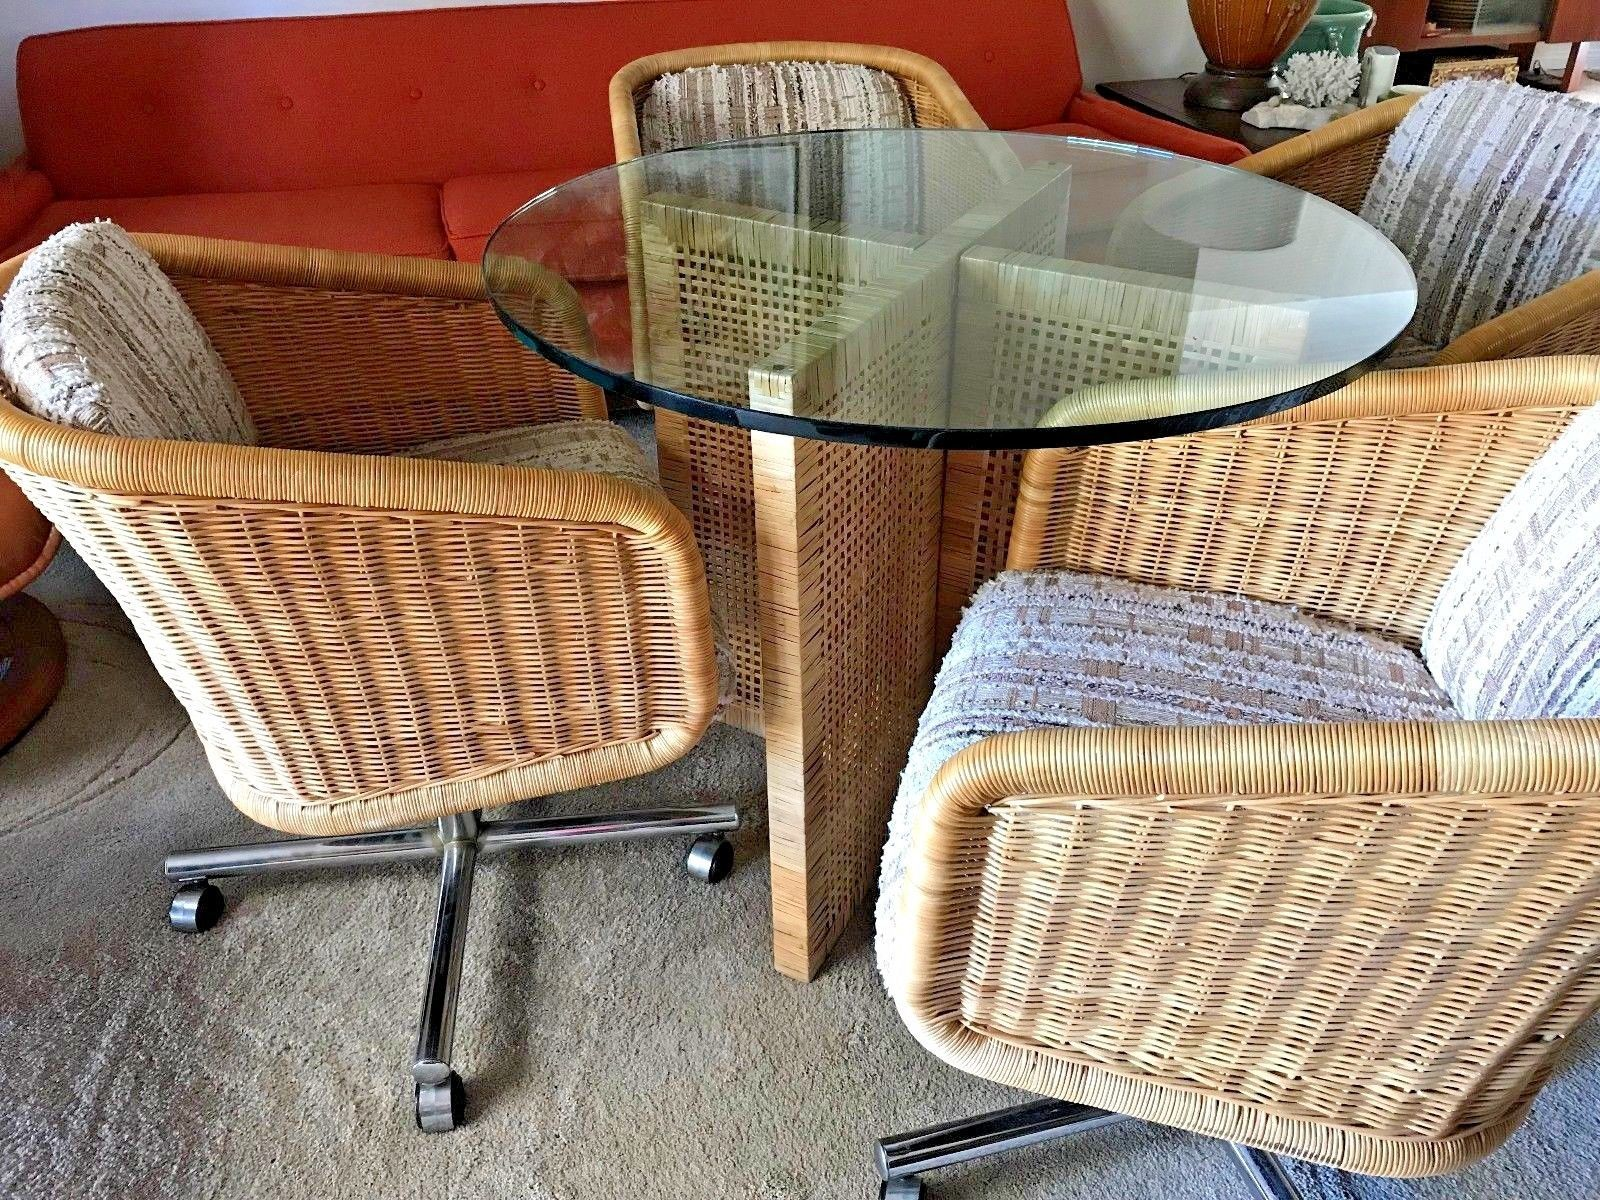 Muebles Long Lane - Mid Century Chromcraft Dinette Wicker Rattan Glass Table And [mjhdah]https://s-media-cache-ak0.pinimg.com/originals/6d/9f/0e/6d9f0ee901d4f2415e698b0441684d2d.jpg